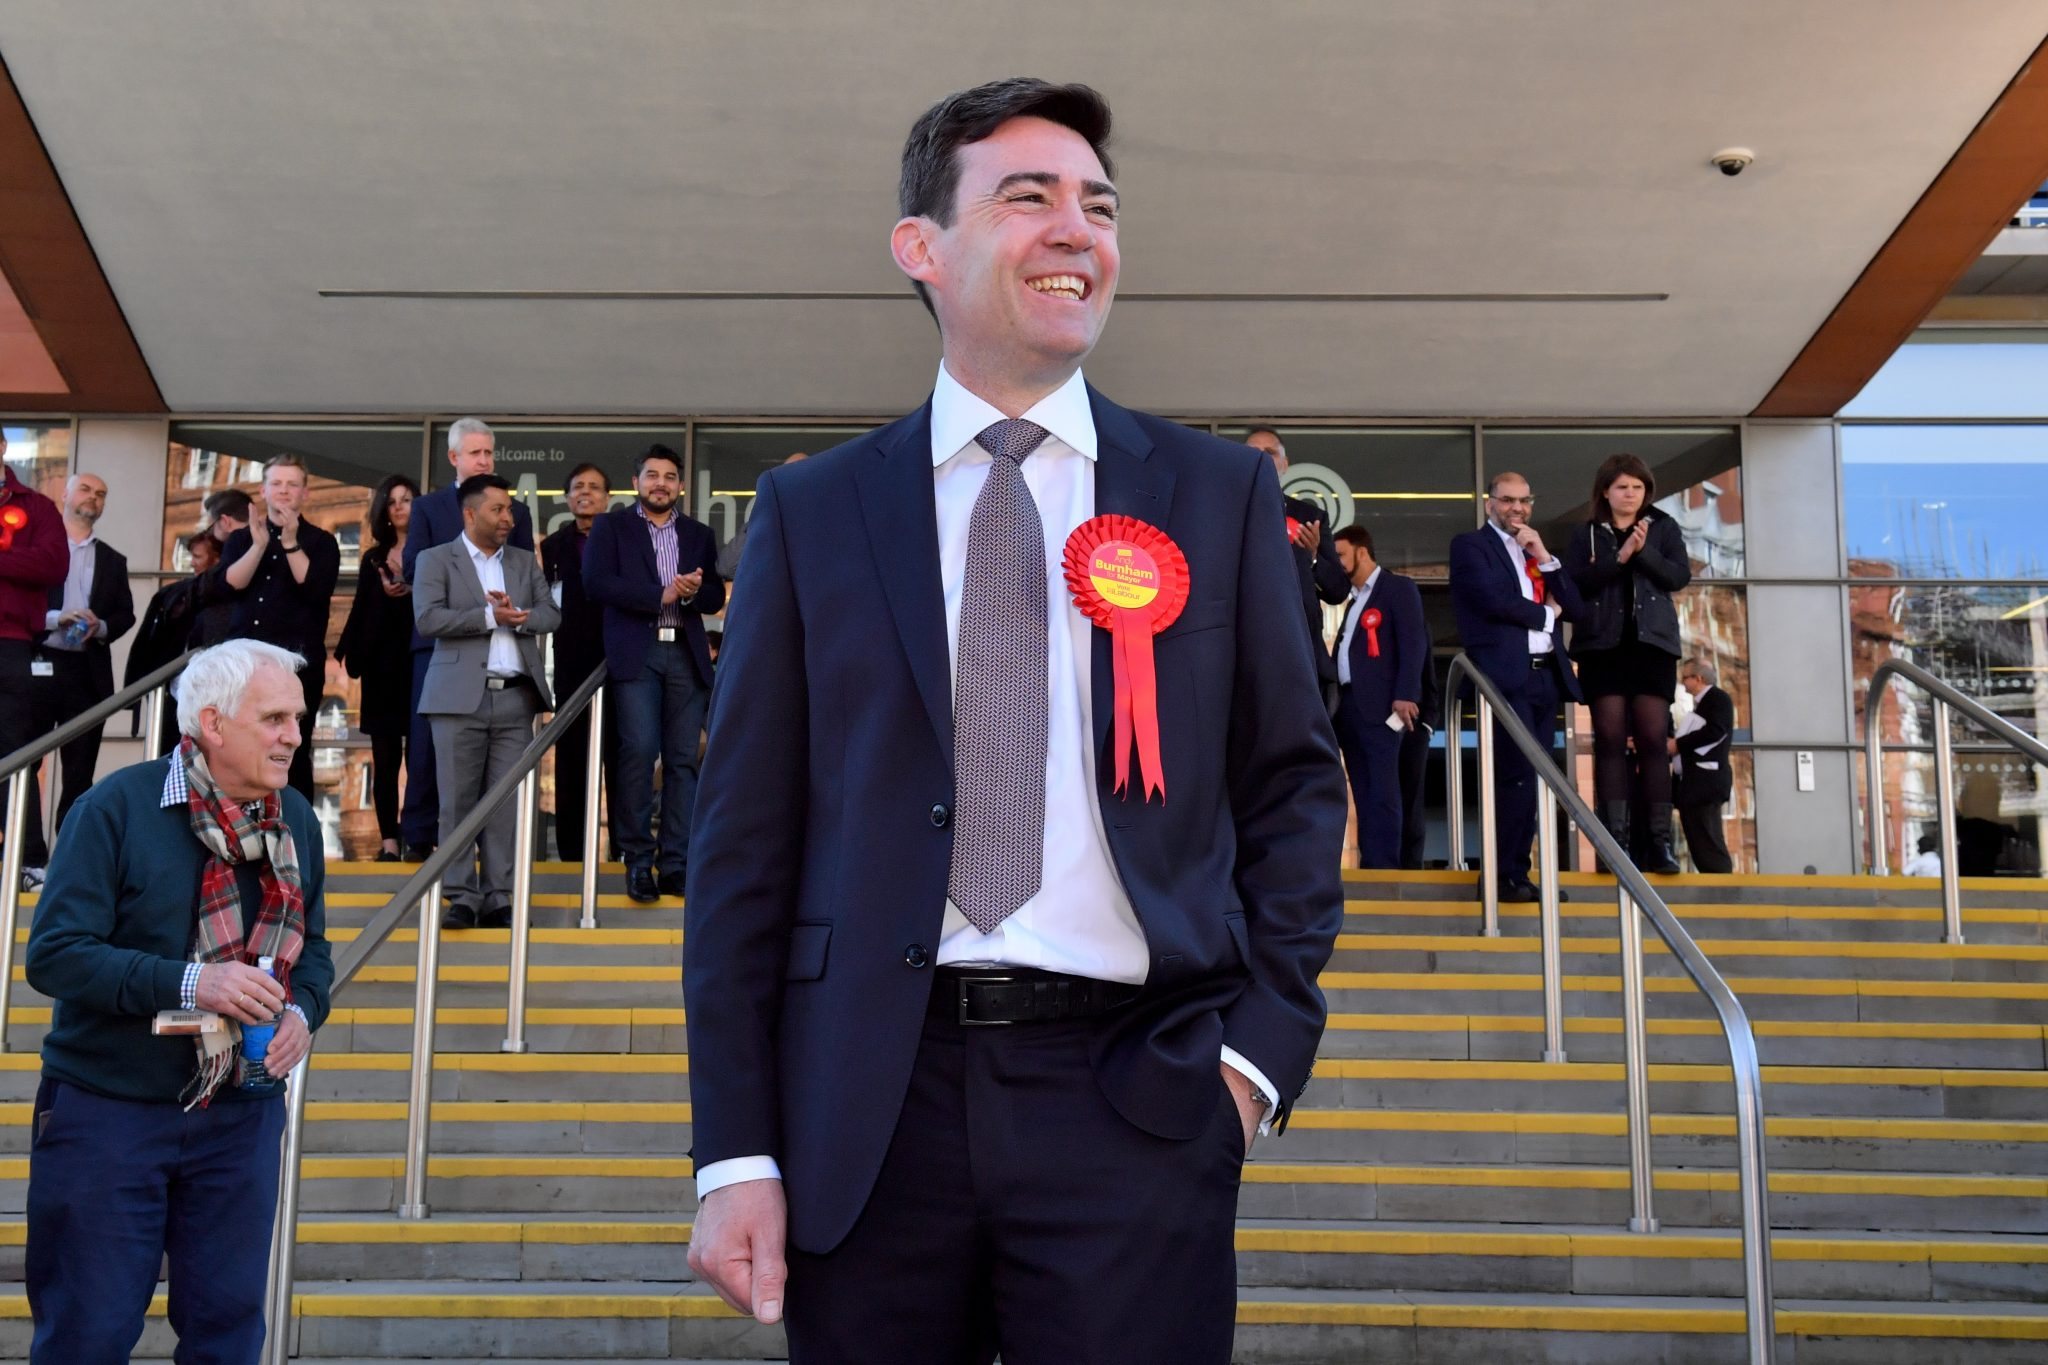 Andy Burnham after being elected as Greater Manchester